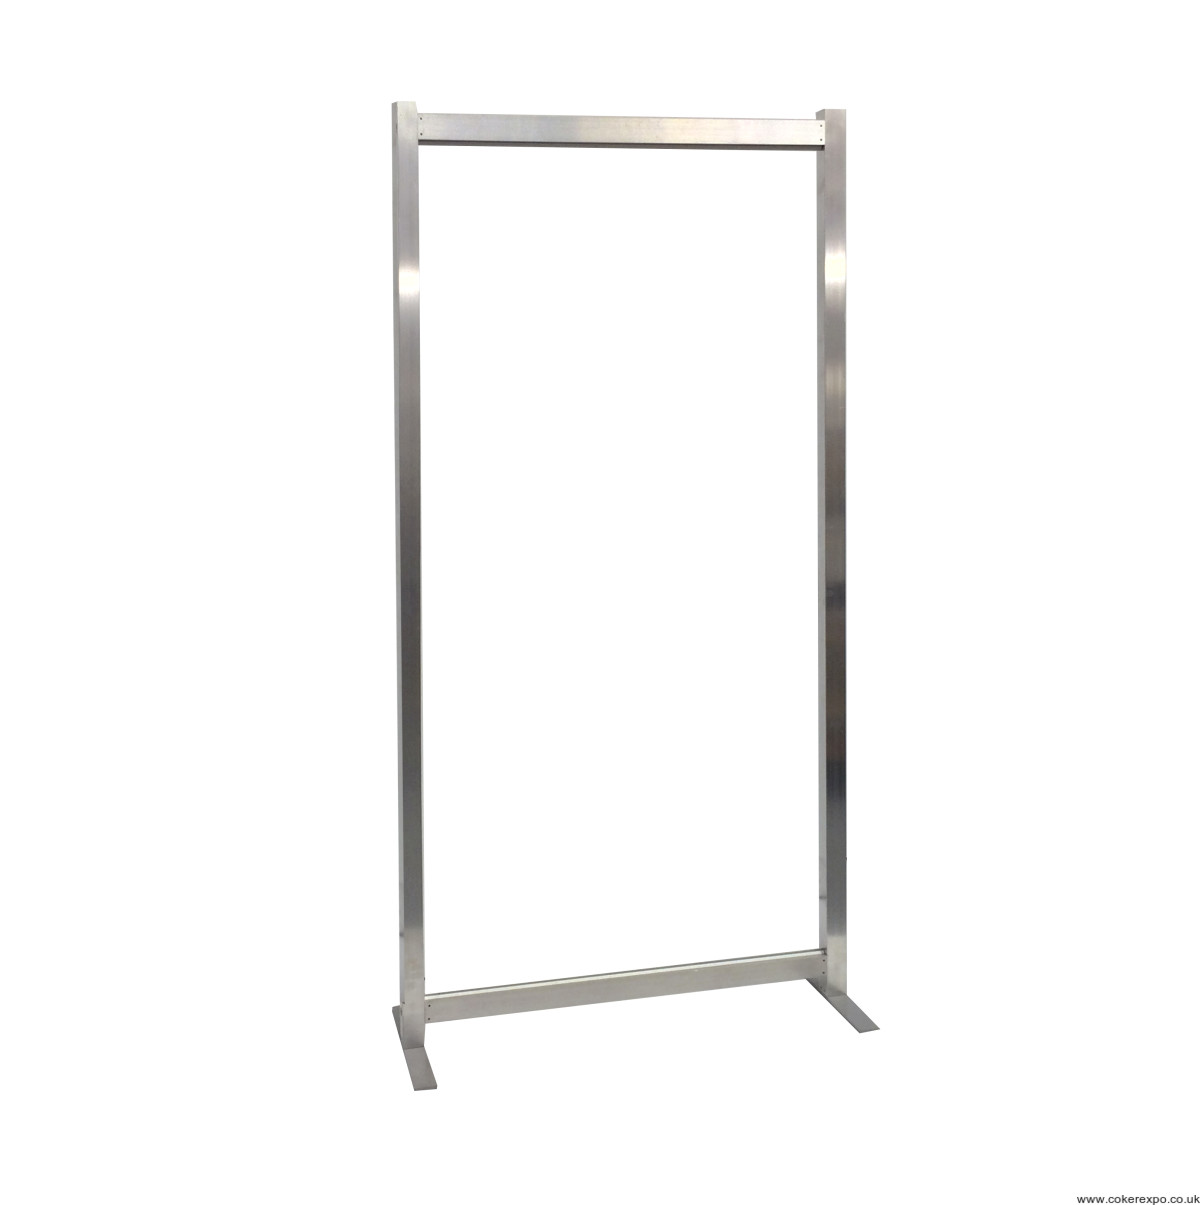 a basic free standing aluminium exhibition frame with feet - Display Frame